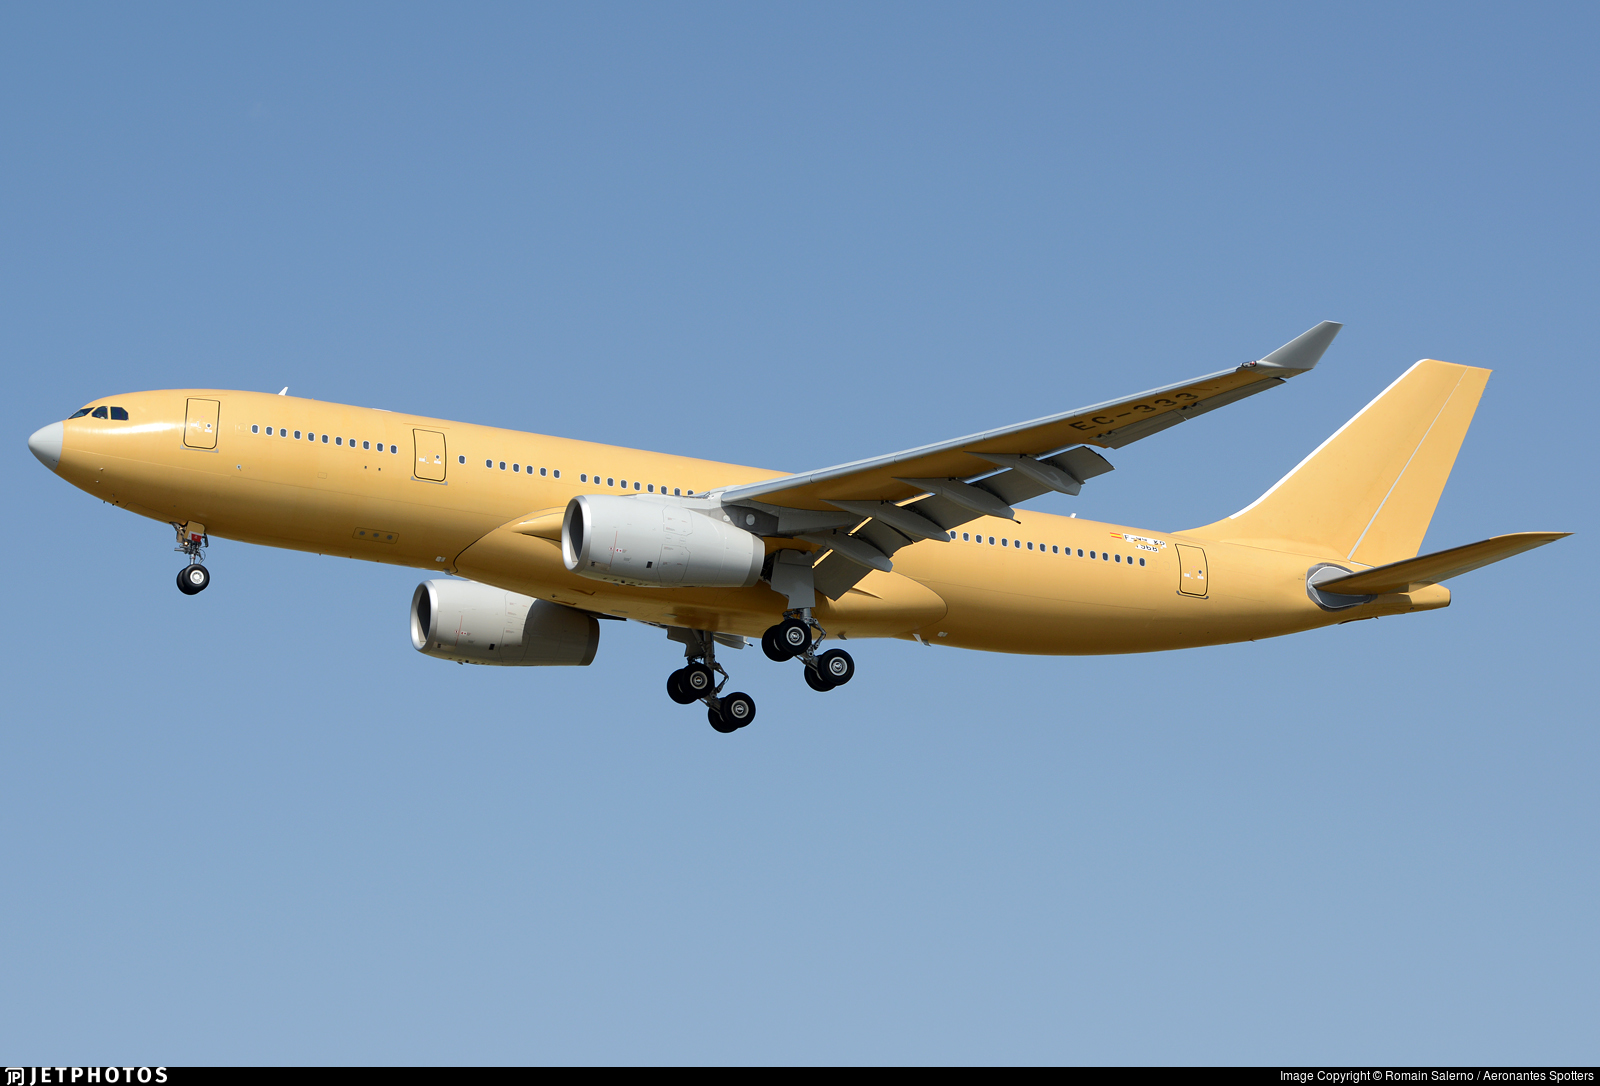 F-WWKP - Airbus A330-243(MRTT) - Airbus Industrie